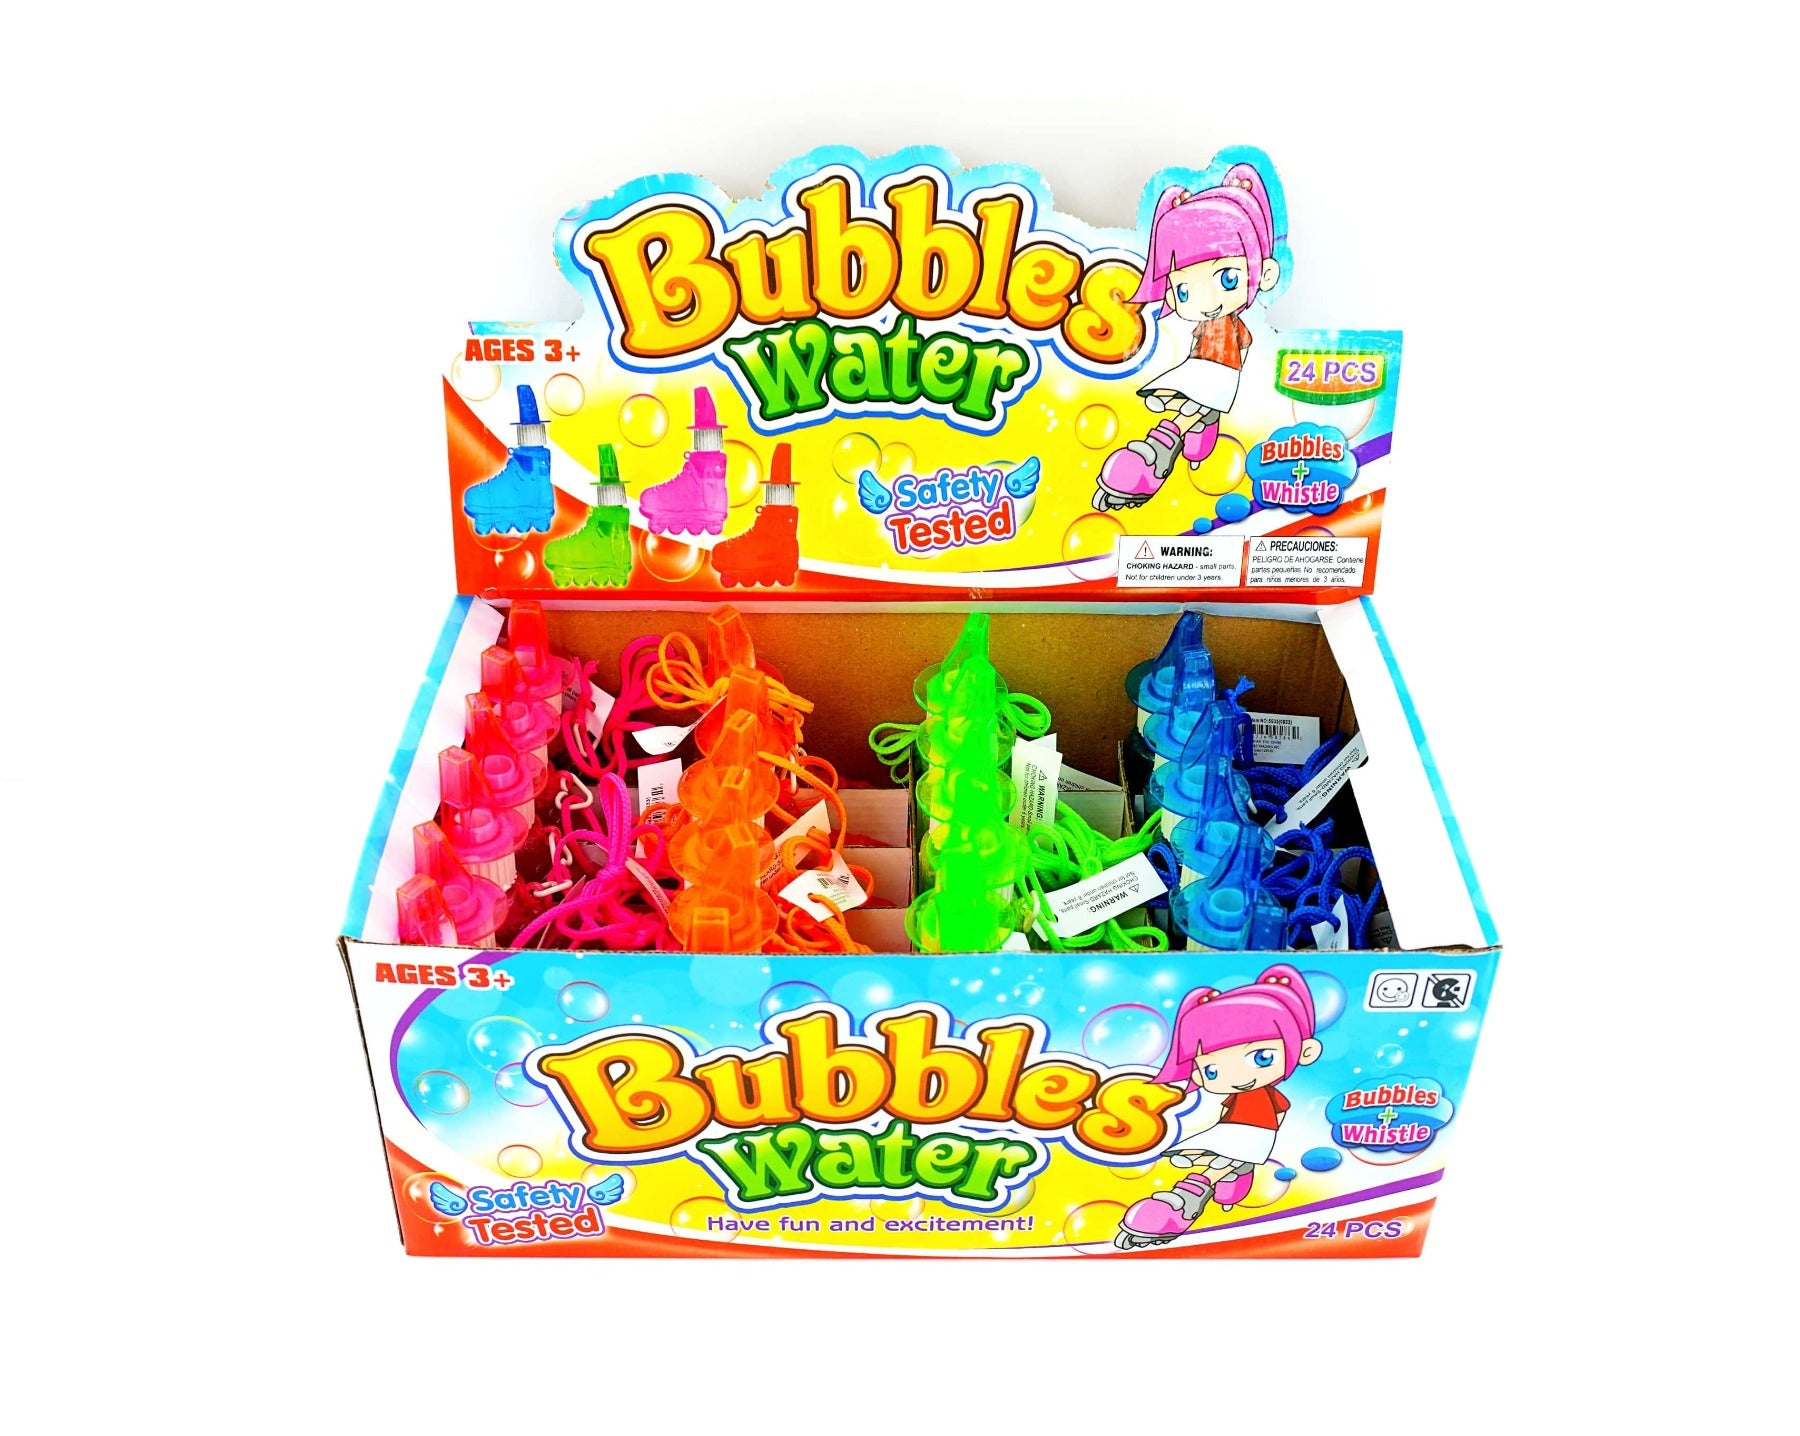 Bubble Whistle - Skate